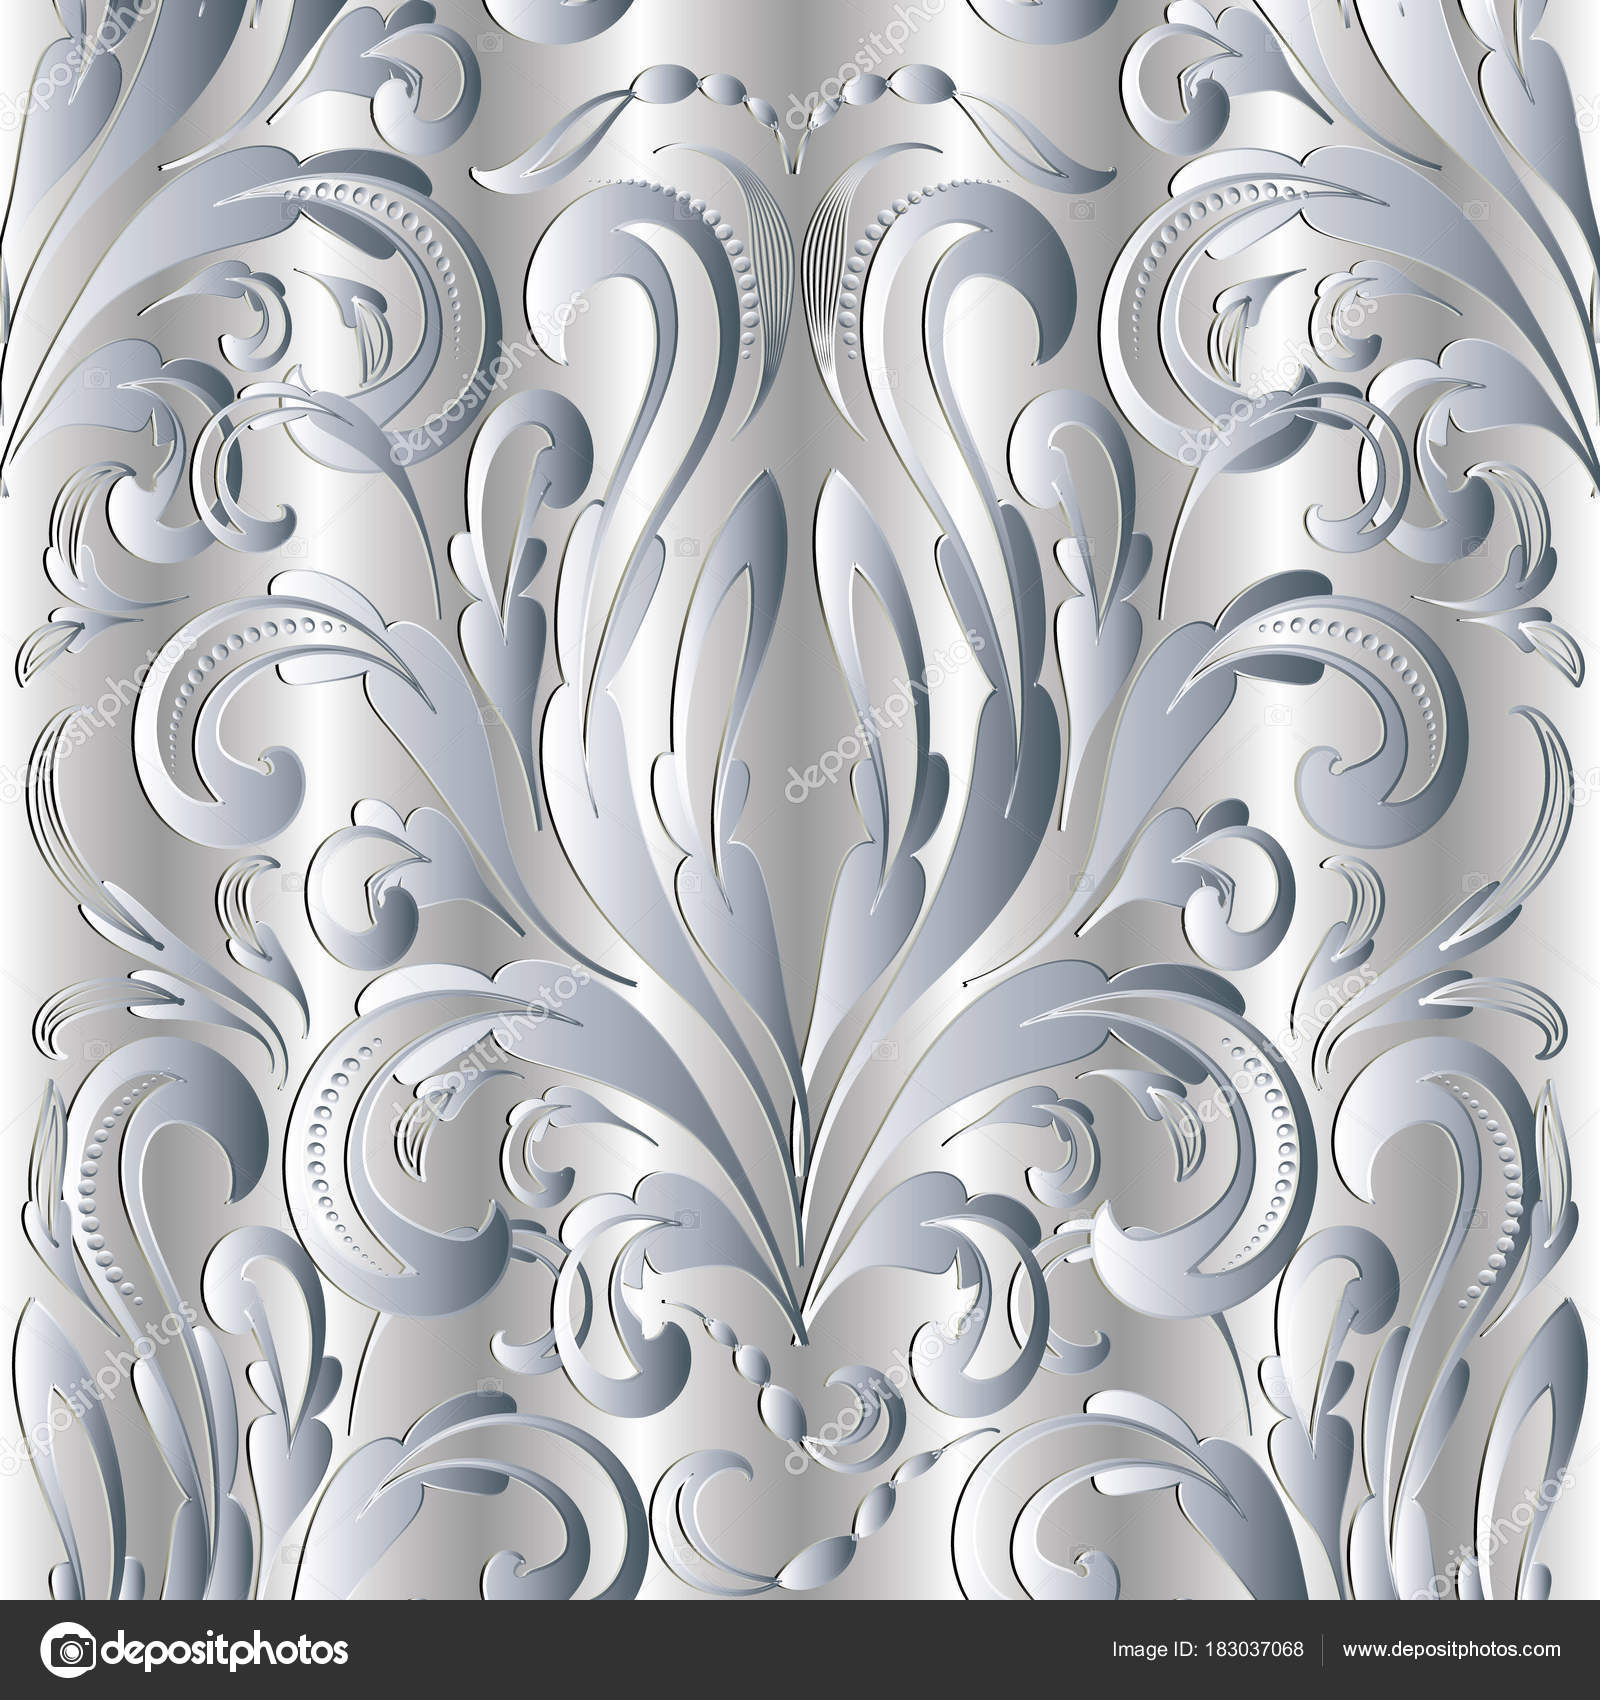 damask baroque silver 3d seamless pattern vector drapery light floral background with hand drawn white flowers swirls dots curves baroque style